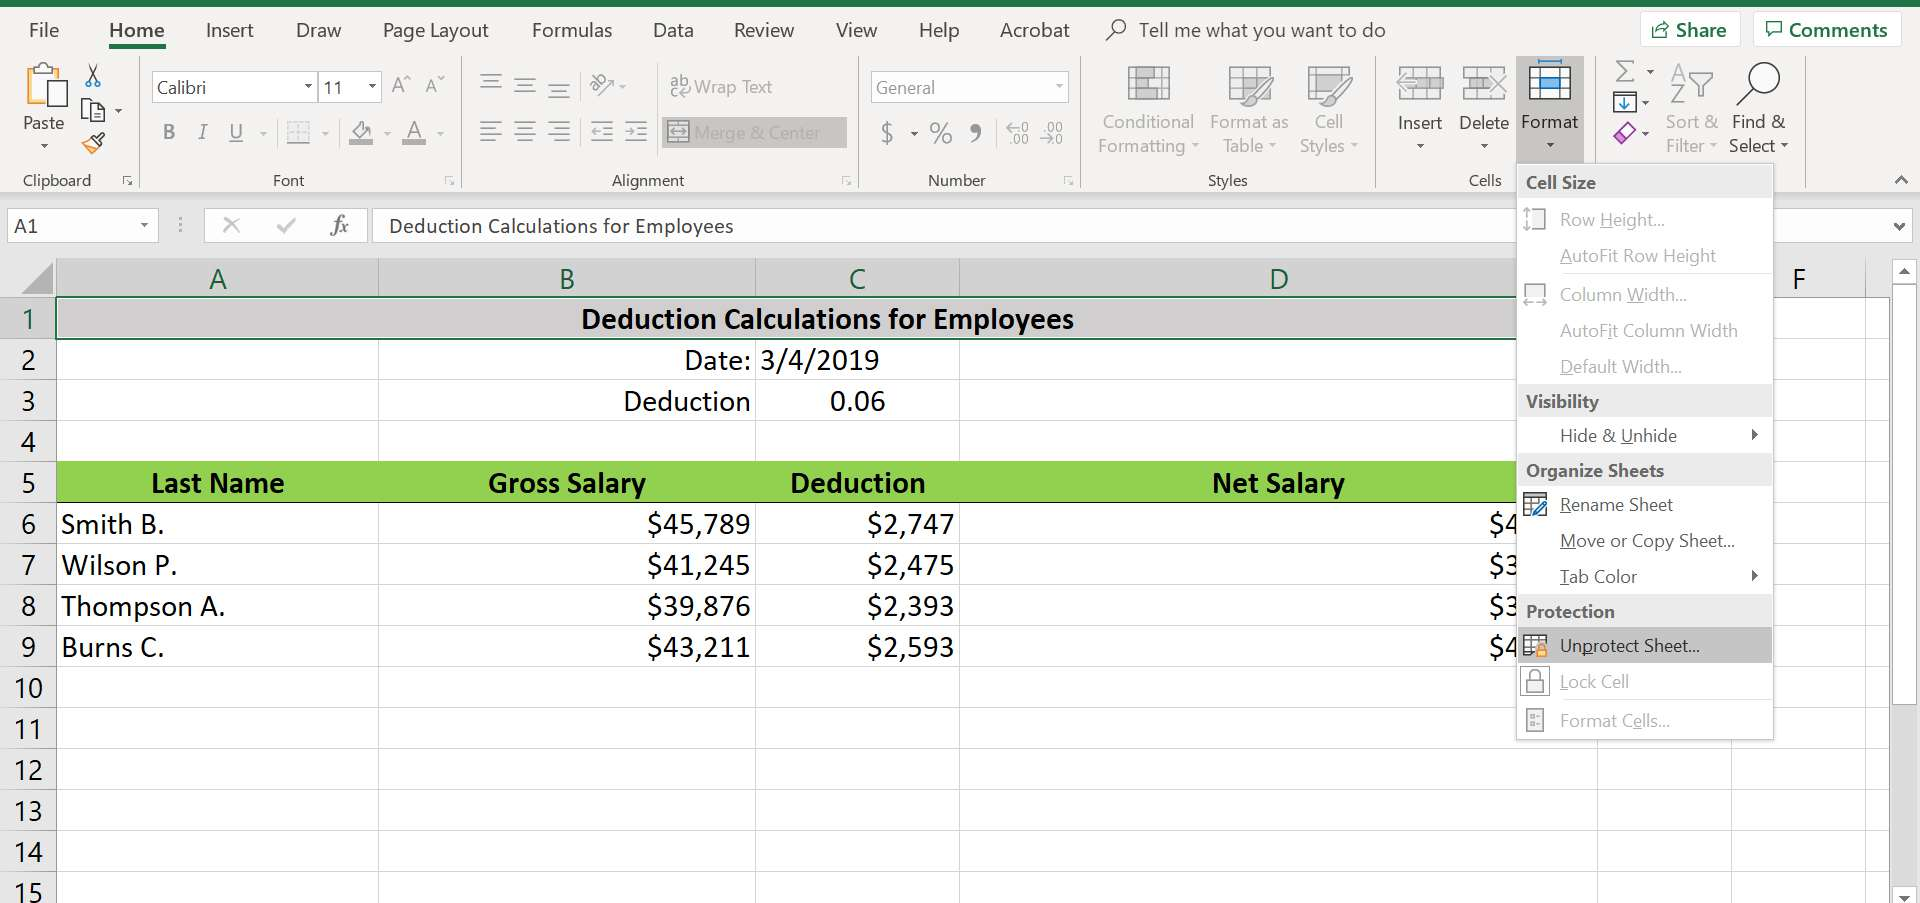 Excel's Format drop-down menu with Unprotect Sheet selected.